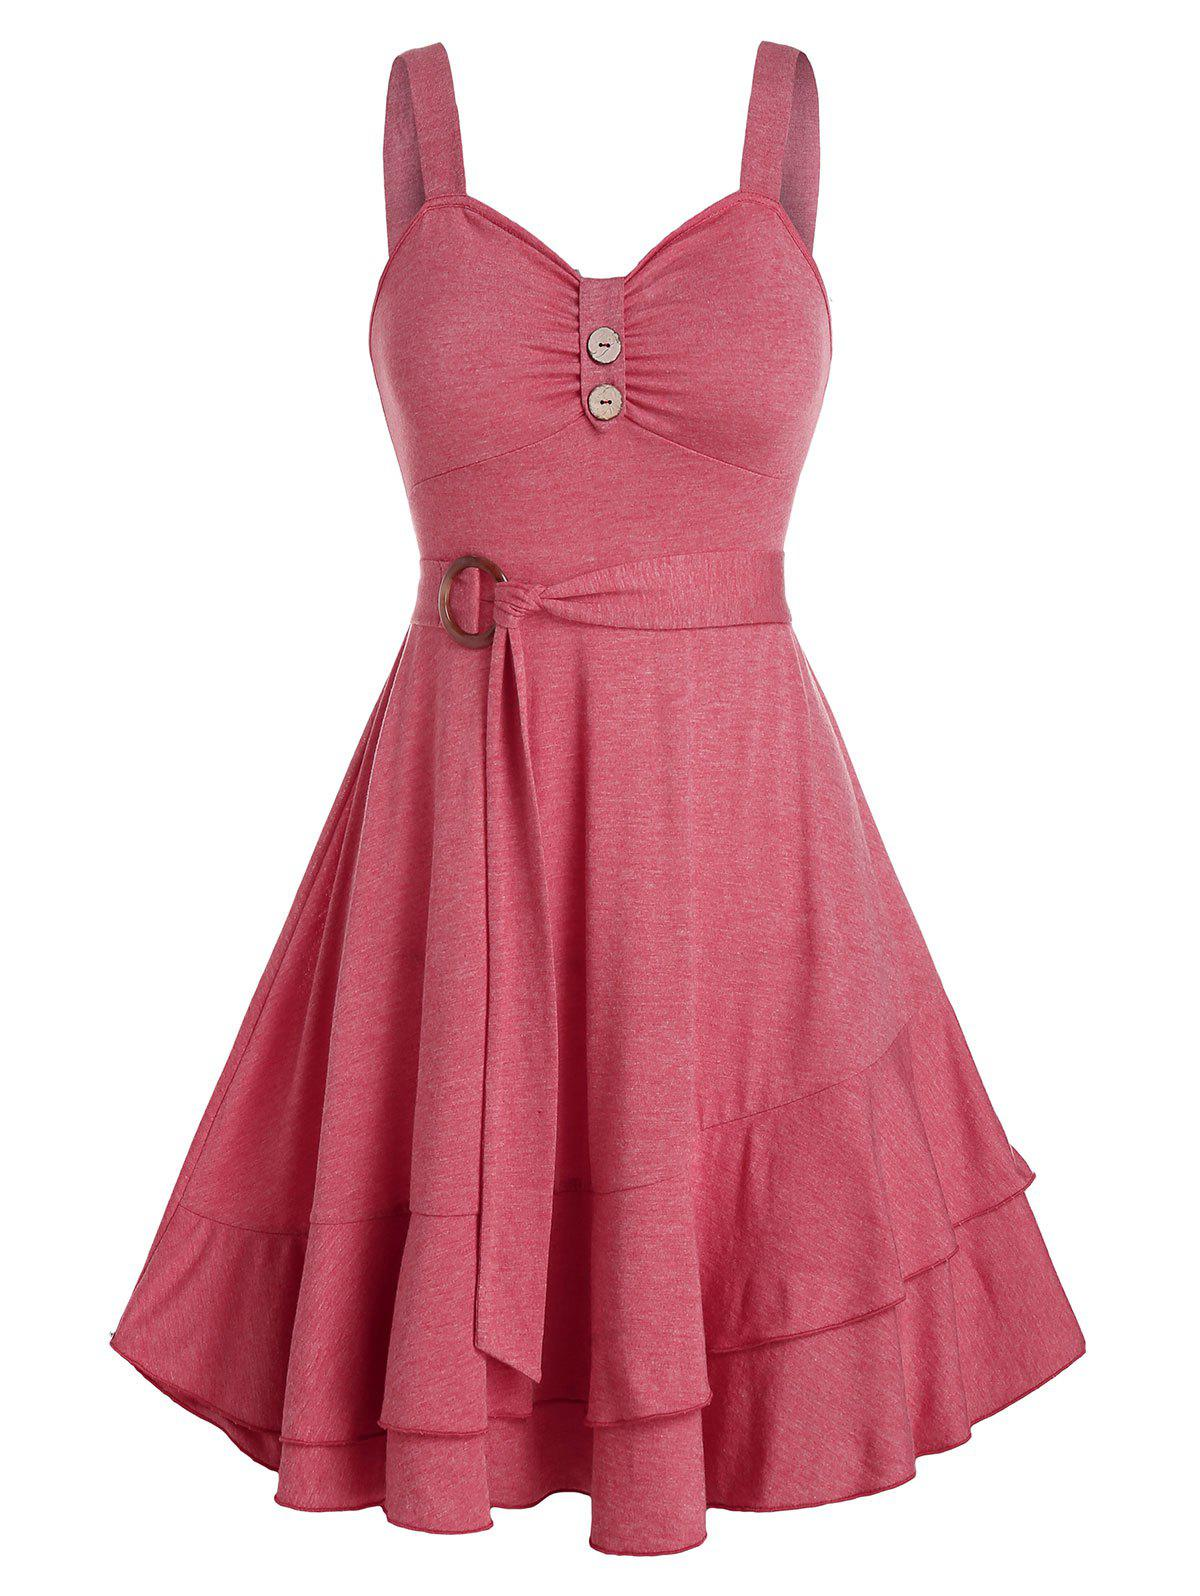 Layered Flounce Tied A Line Dress - TULIP PINK L